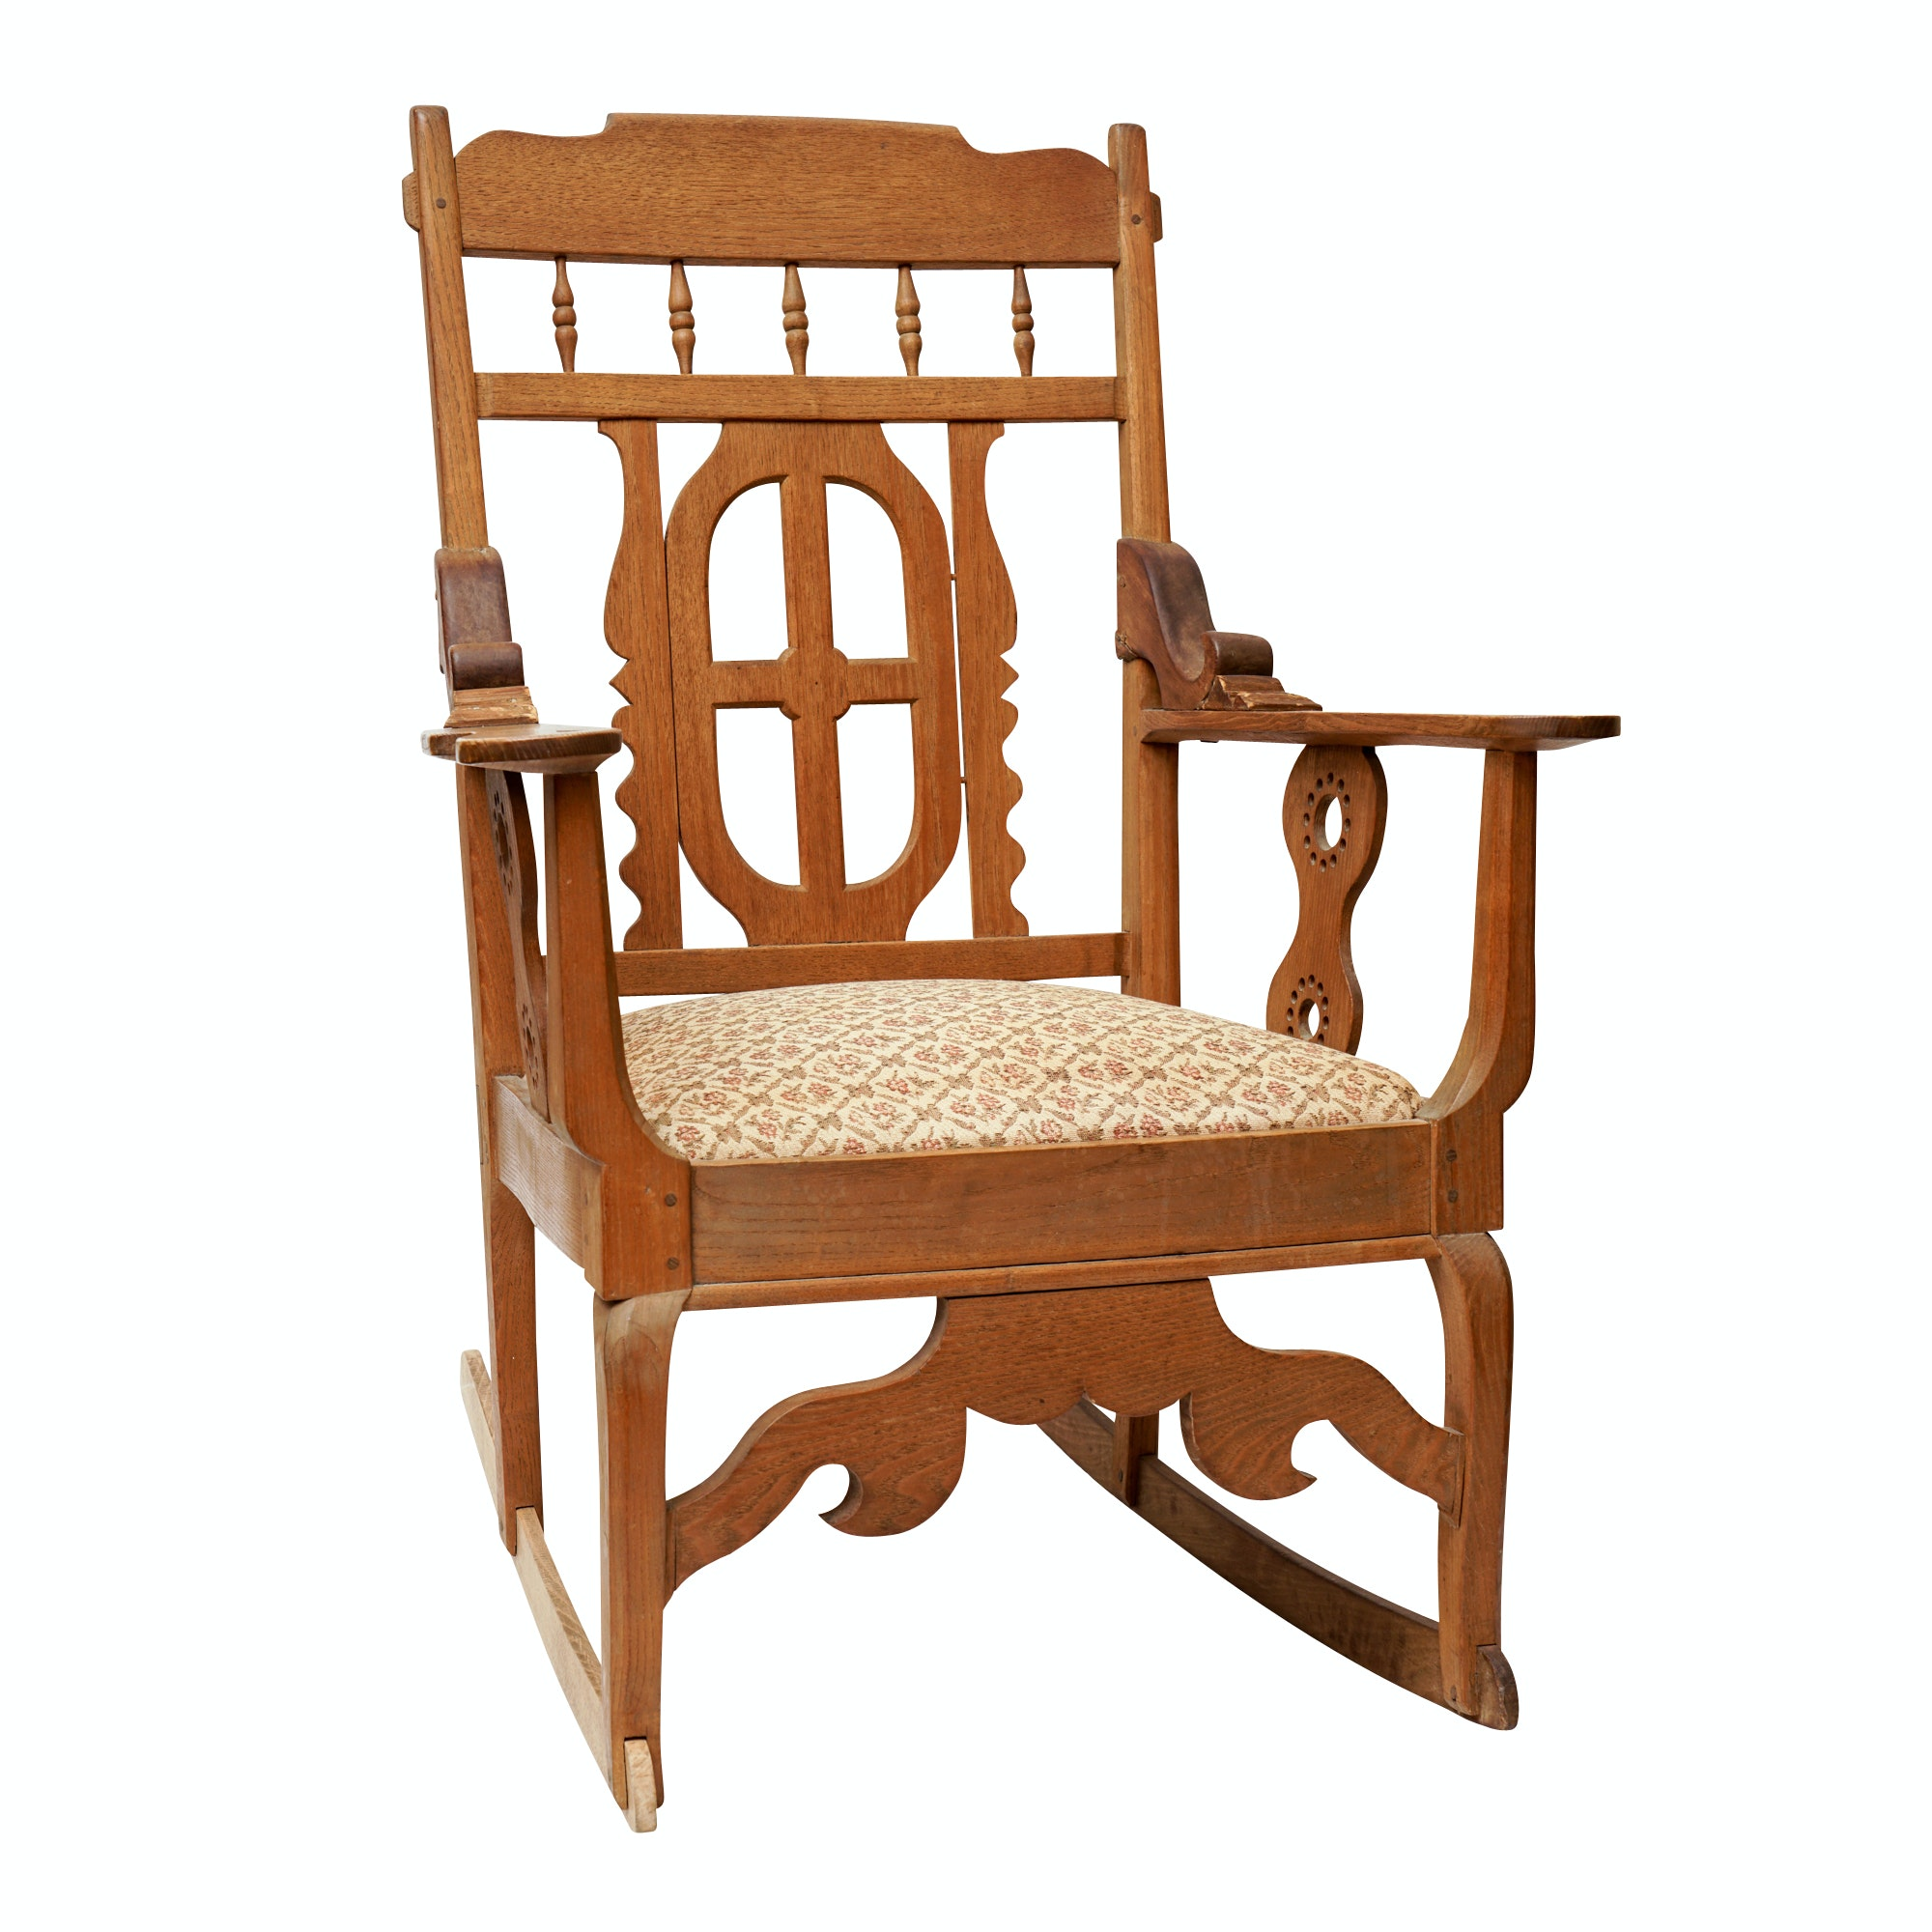 Antique Arts and Crafts Oak Rocking Chair